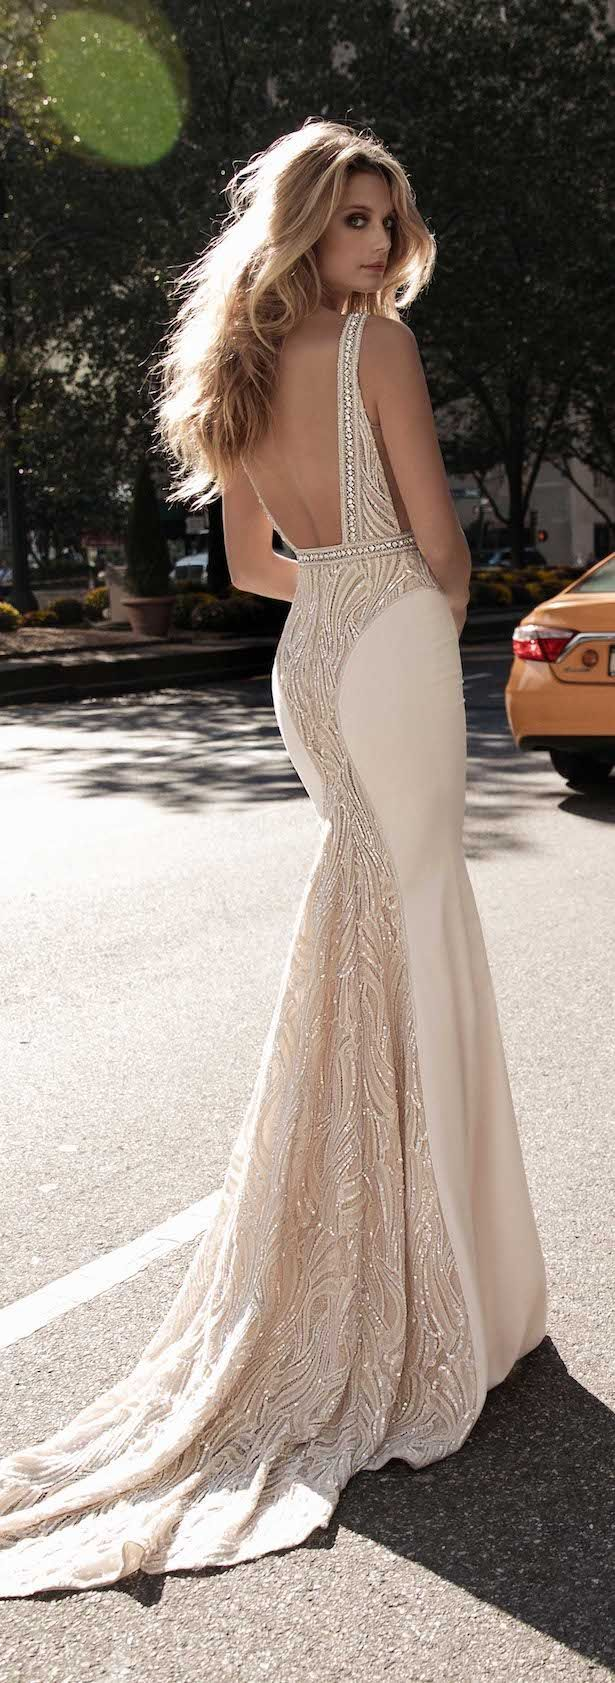 Wedding dress by berta bridal fall for the wedding i will